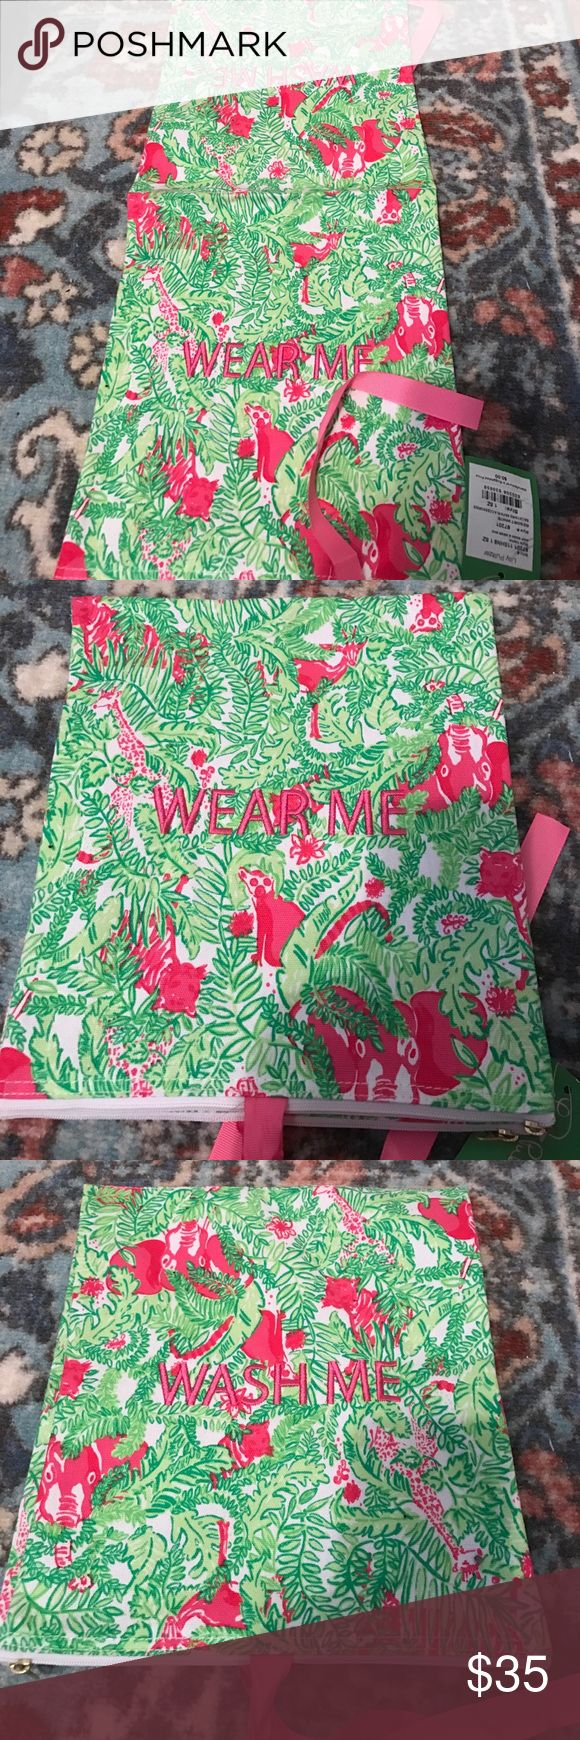 Lilly Pulitzer laundry bag Lilly Pulitzer laundry bag Lilly Pulitzer Bags Travel Bags